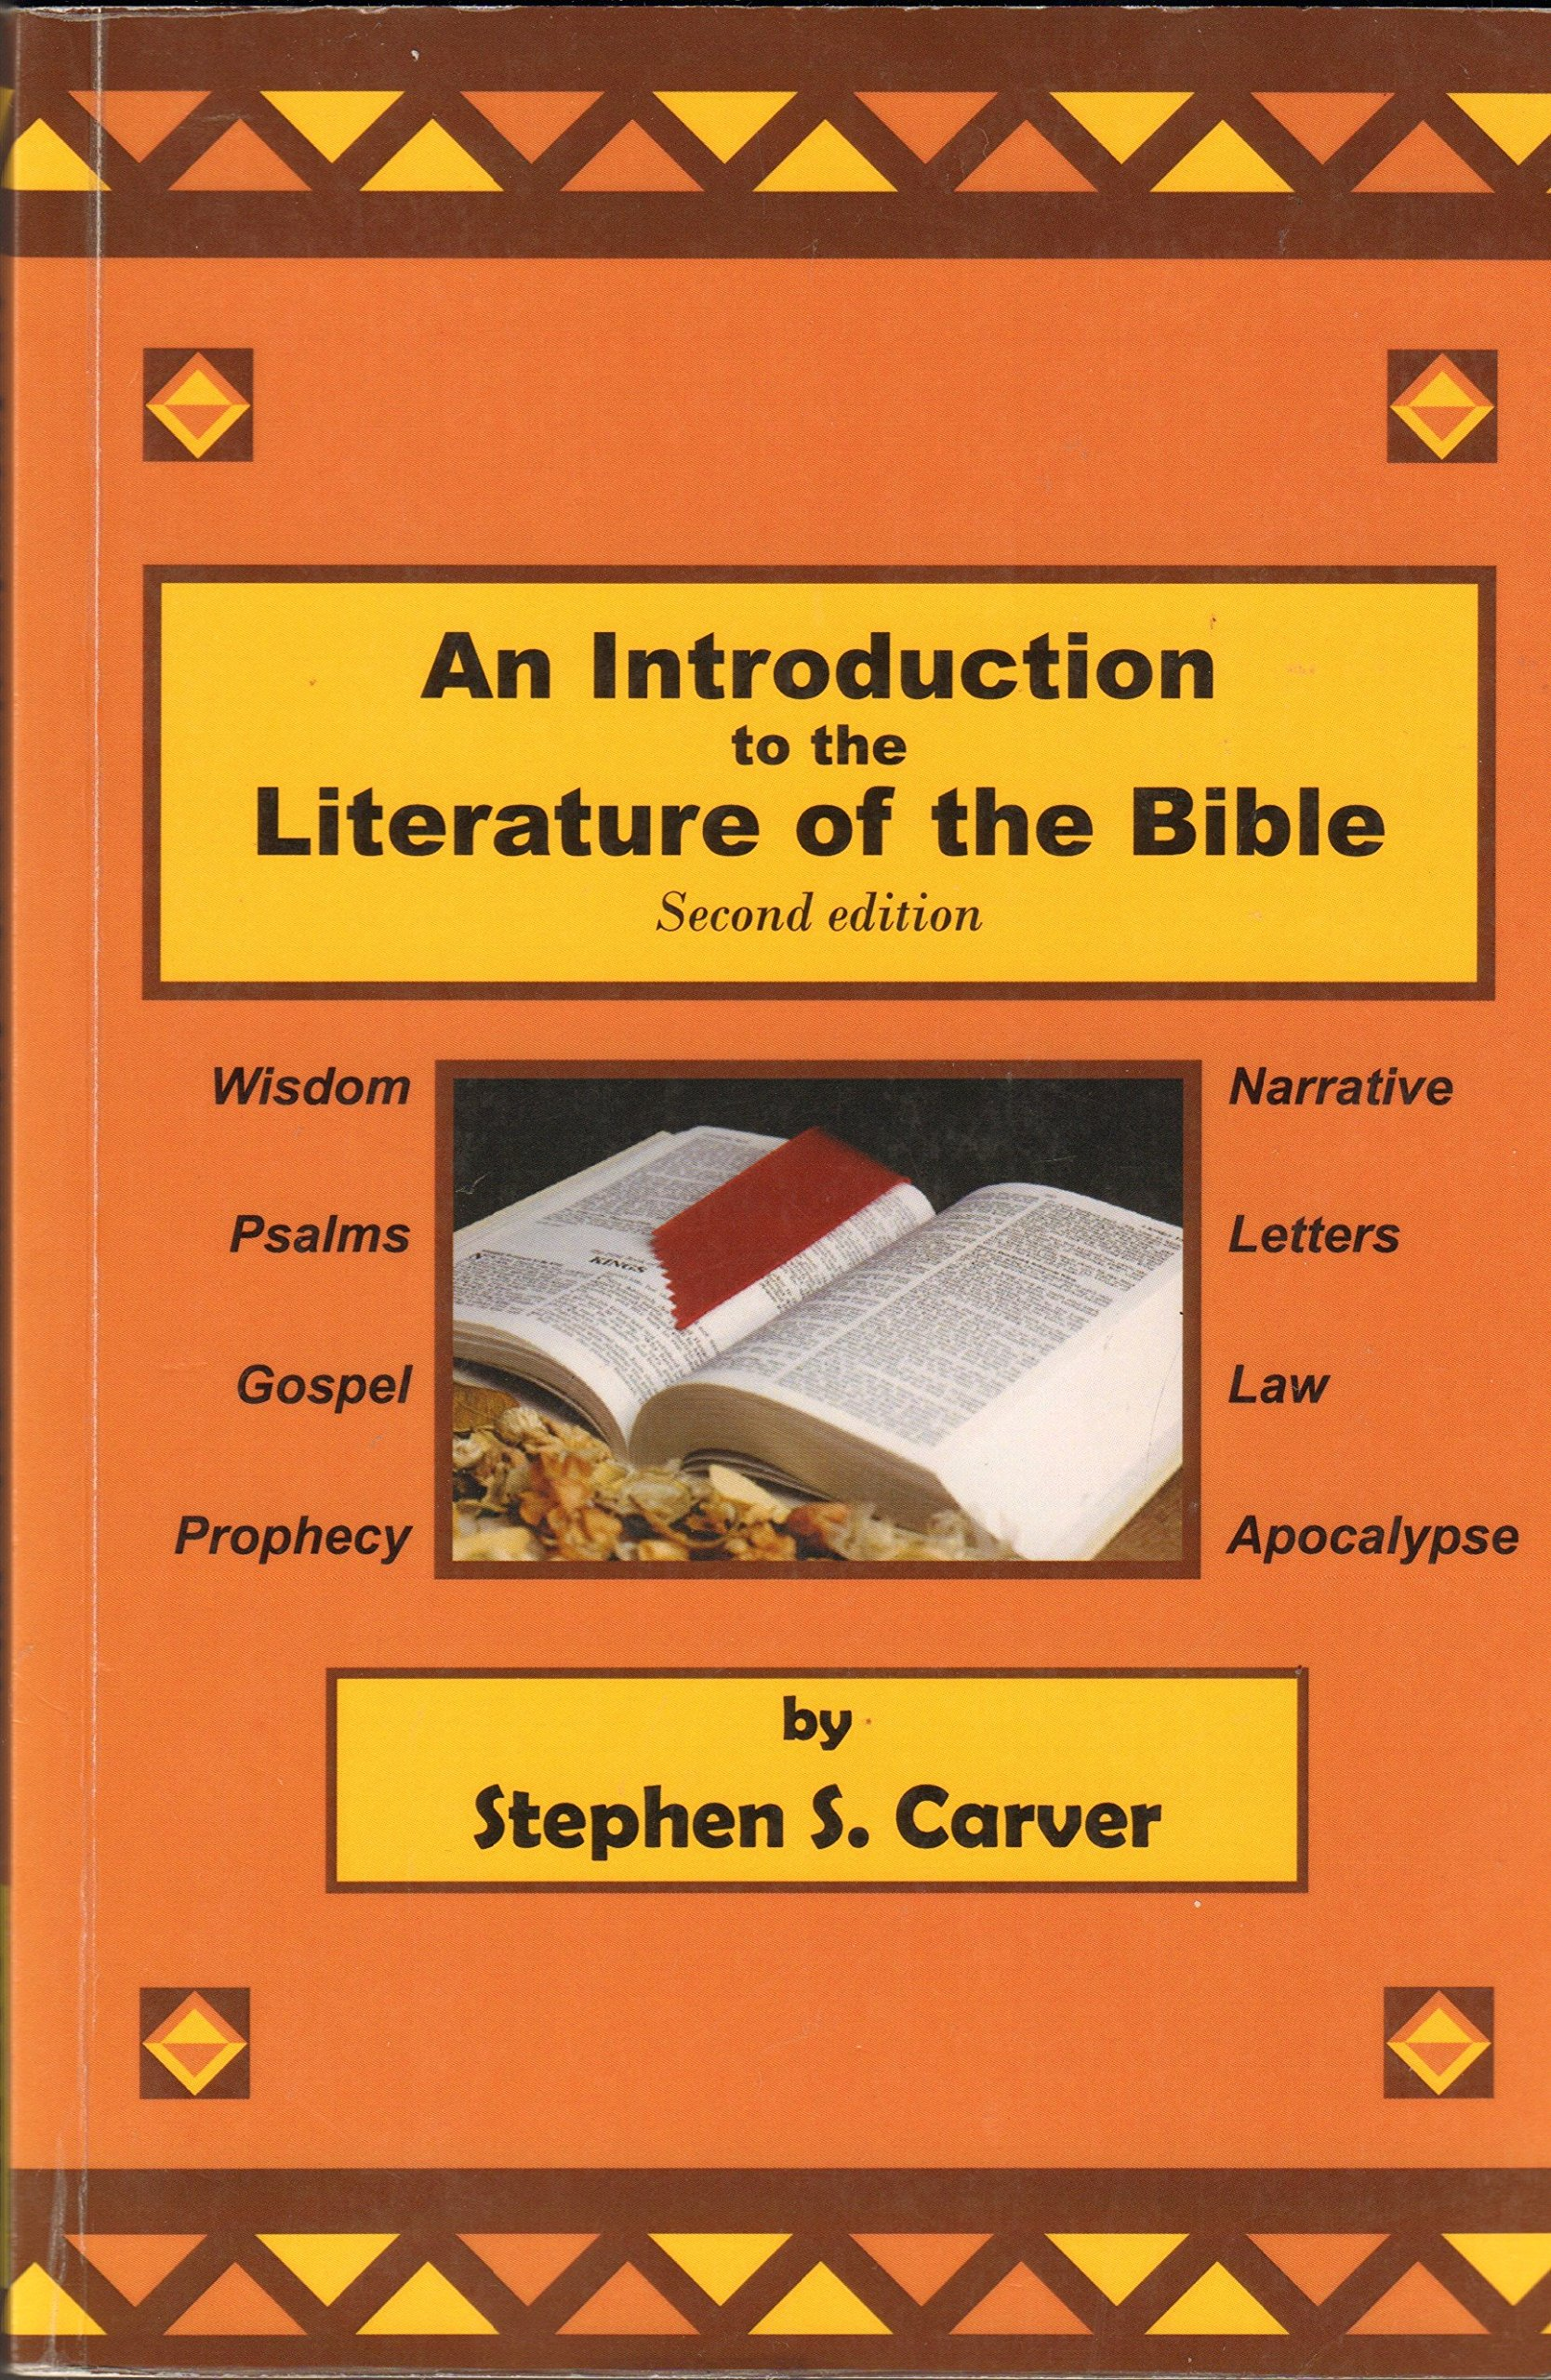 Literature craft and voice 2nd edition - Introduction To The Literature Of The Bible Stephen S Carver 9780615330044 Amazon Com Books